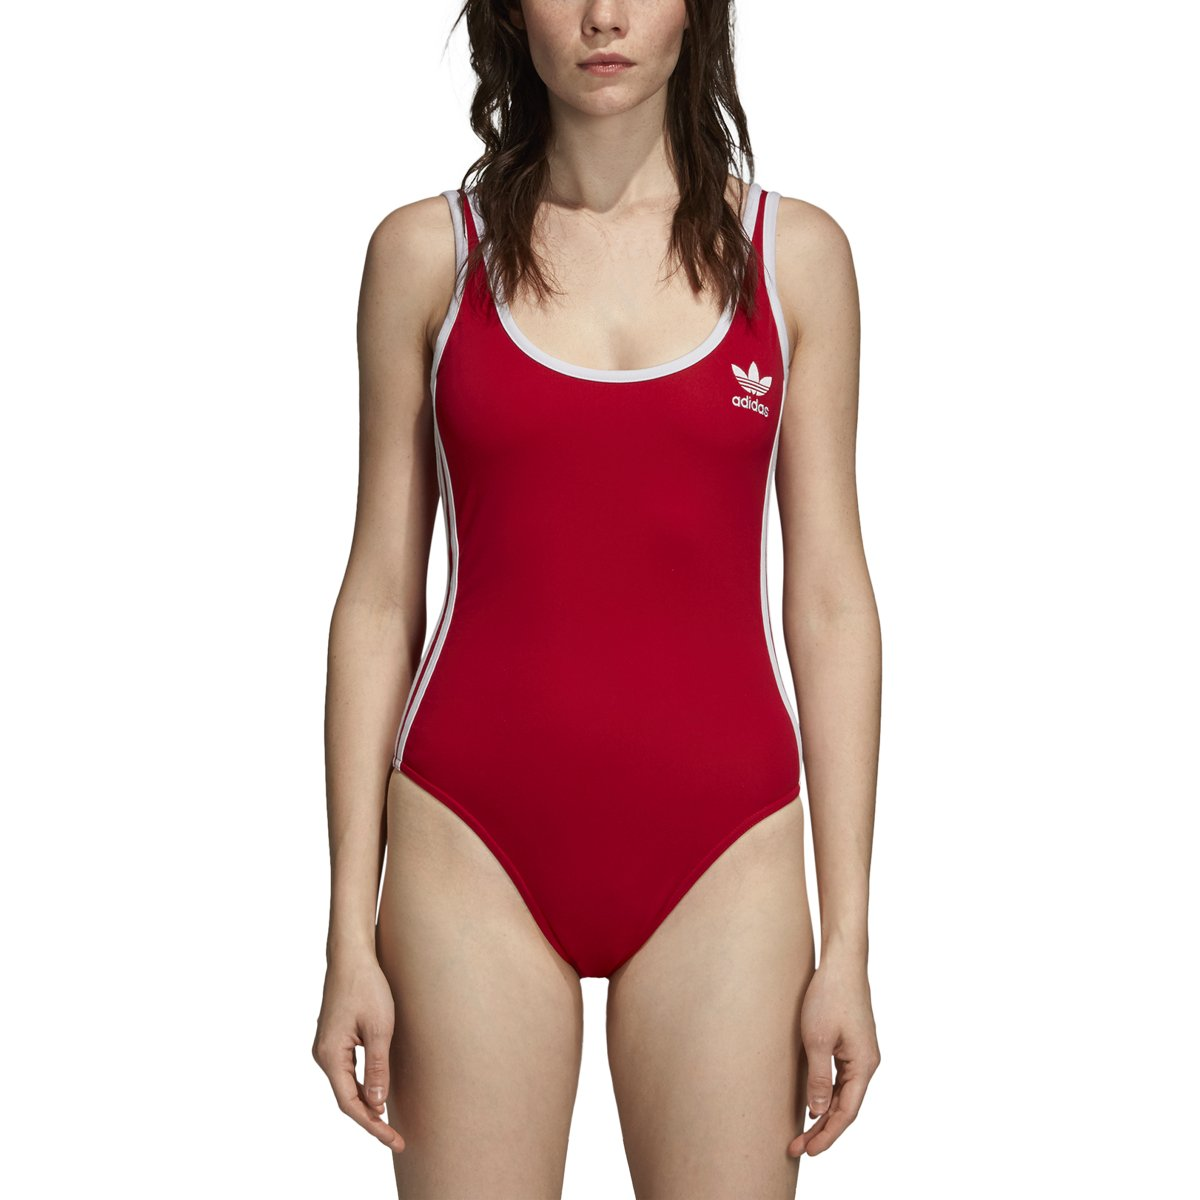 adidas Originals Women's 3-Stripes Bodysuit, Real Red, M